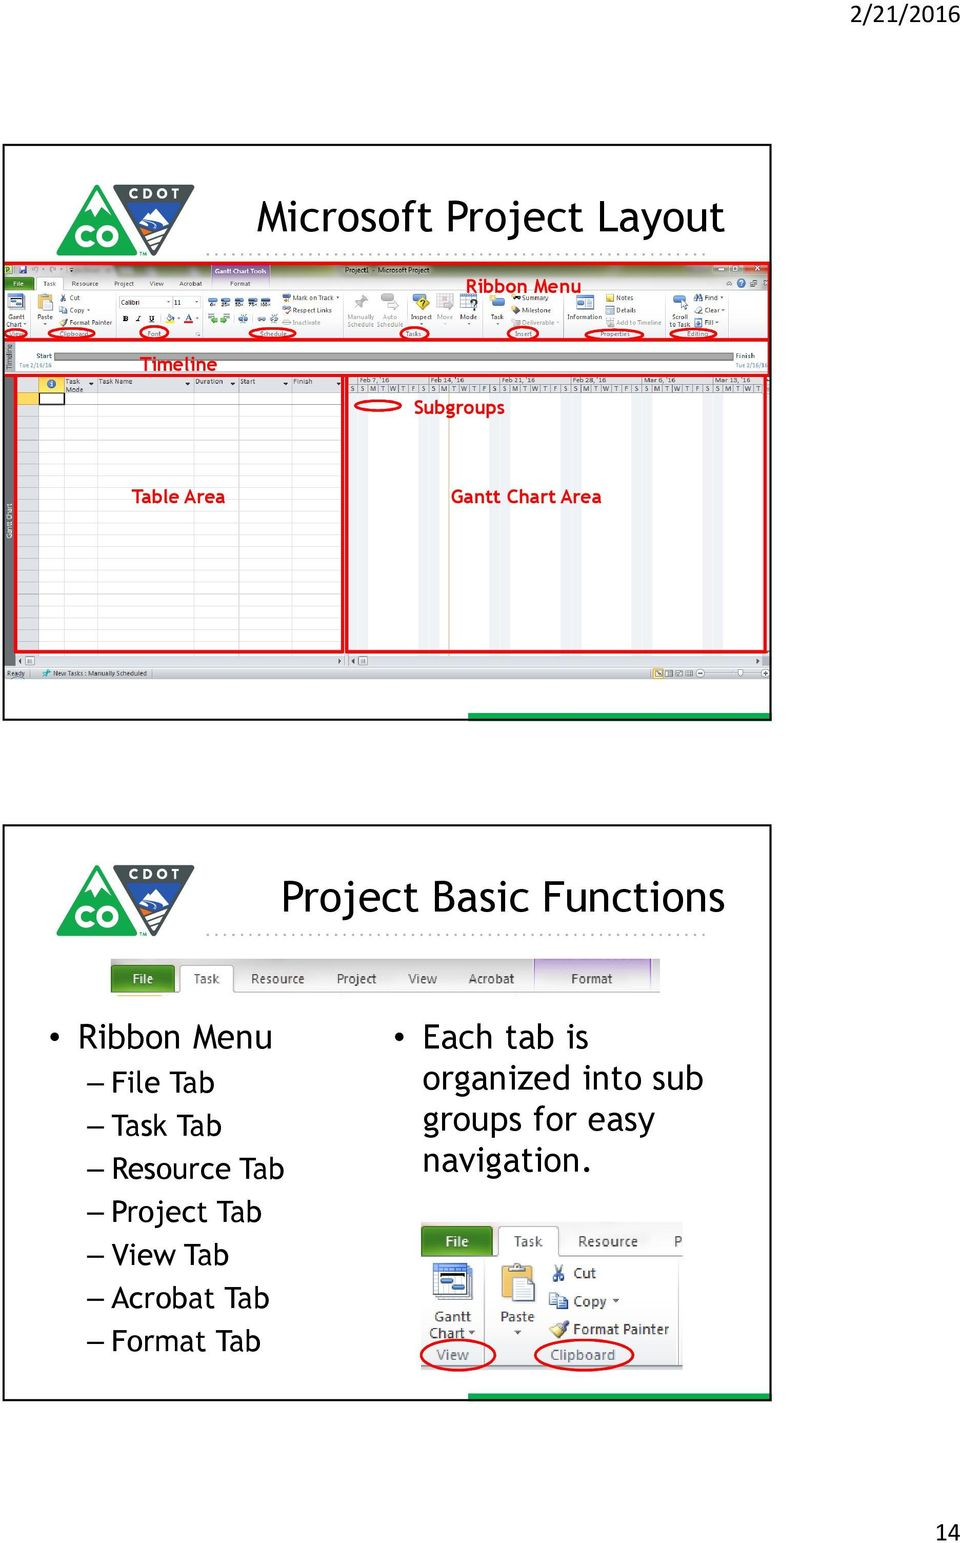 Tab Task Tab Resource Tab Project Tab View Tab Acrobat Tab